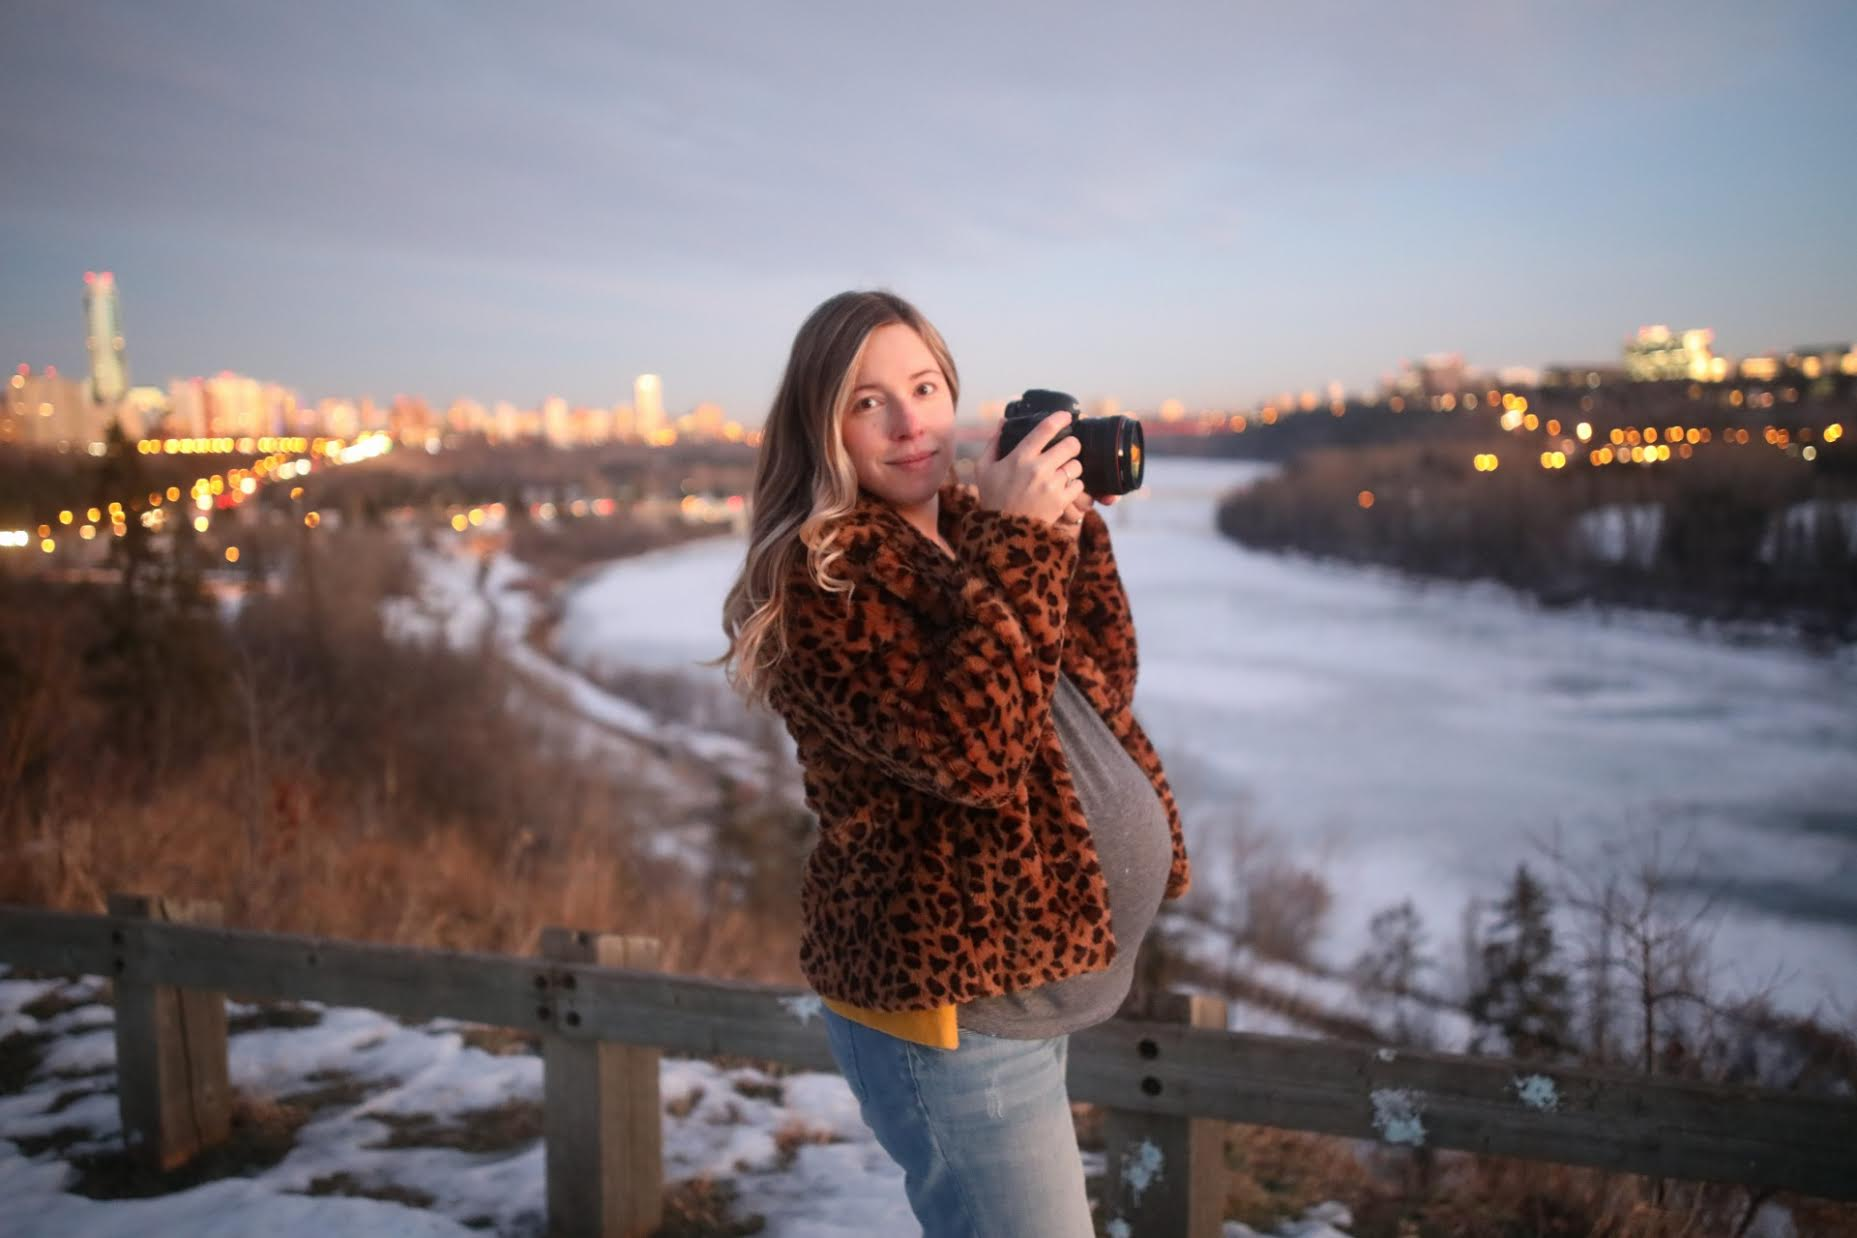 Shooting at dusk with my brother at 40 weeks and two days, 14 hours before going into the hospital to be induced. Photo: Jon Curow